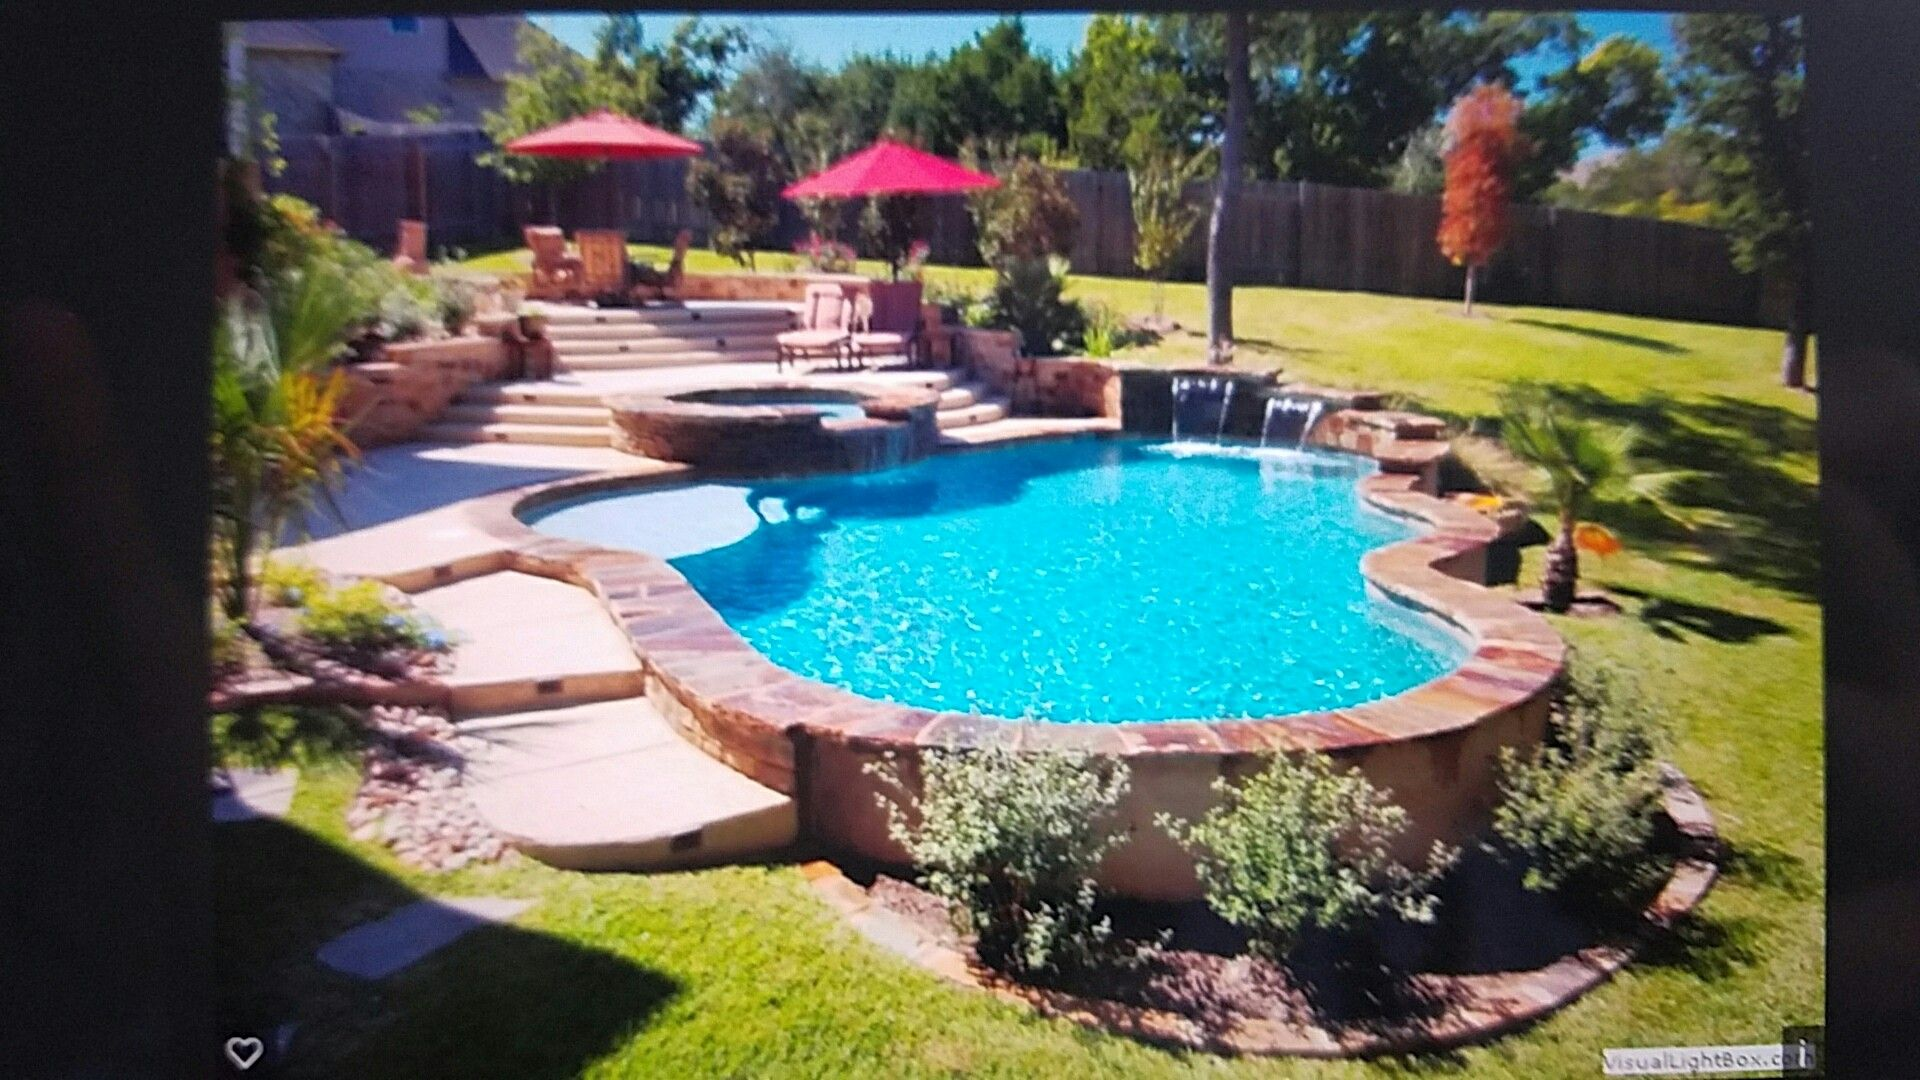 Pool Built Into Hill Backyard Pool Landscaping Landscaping Around Pool Pool Landscaping